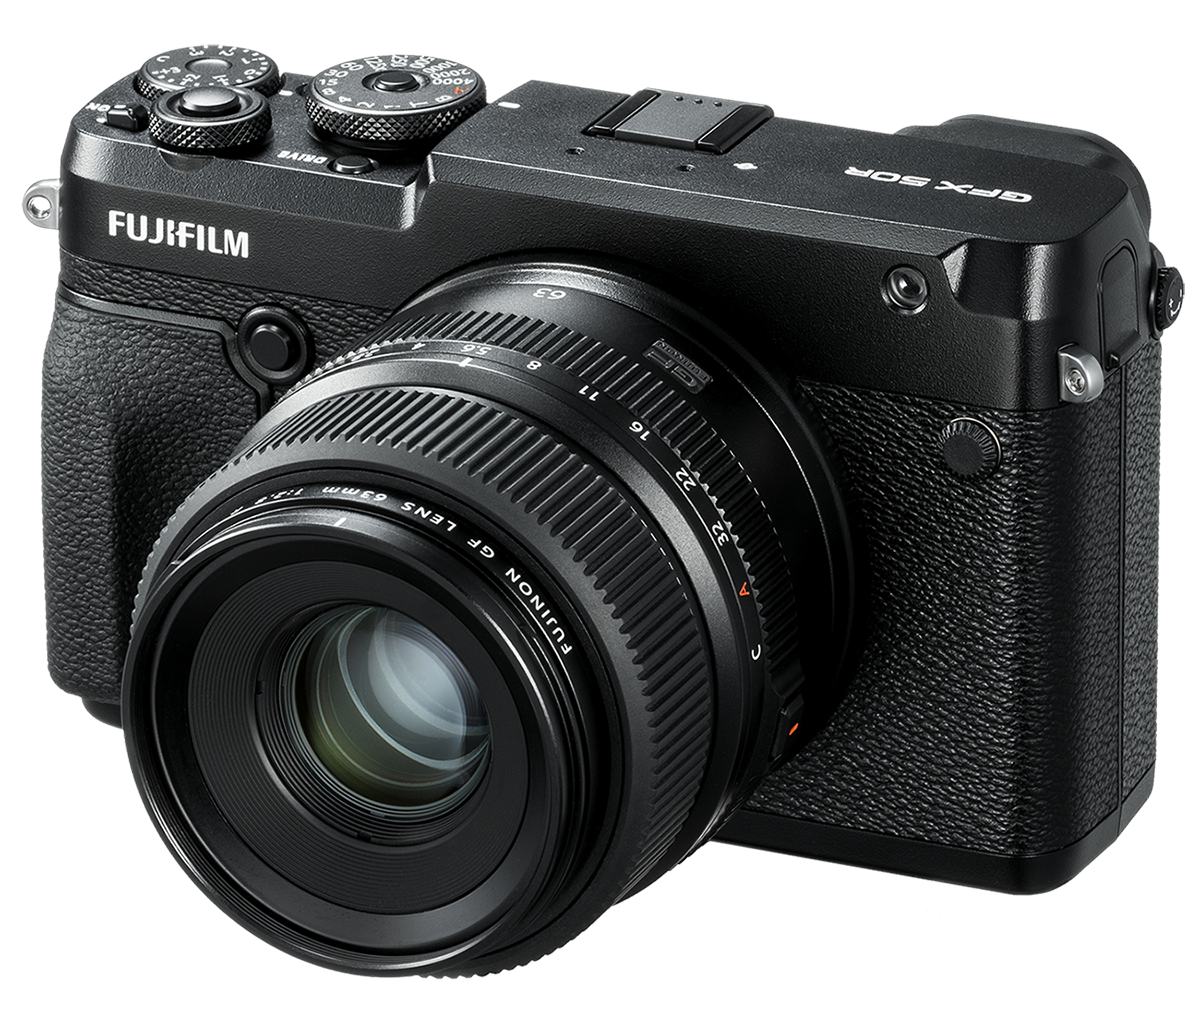 NOW IN STOCK: The Fujifilm GFX 50R